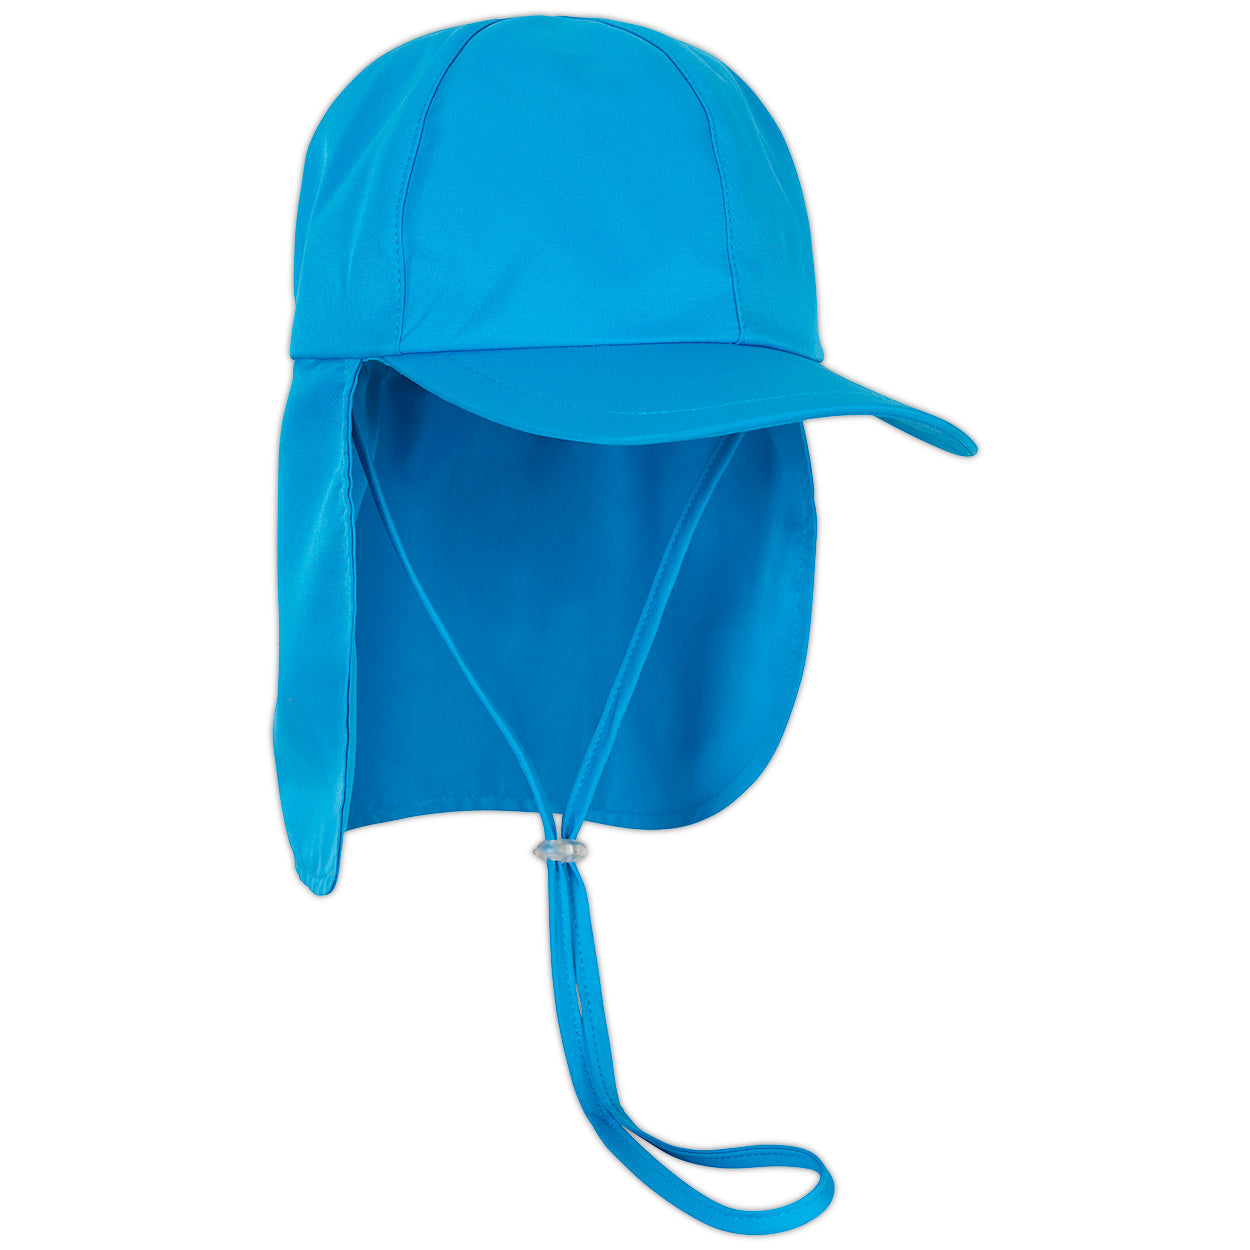 Kids Blue Legionnaire Sun Hat Upf 50 Size S Xl Unisex Boys Girls Blue Right View Sunpoplife